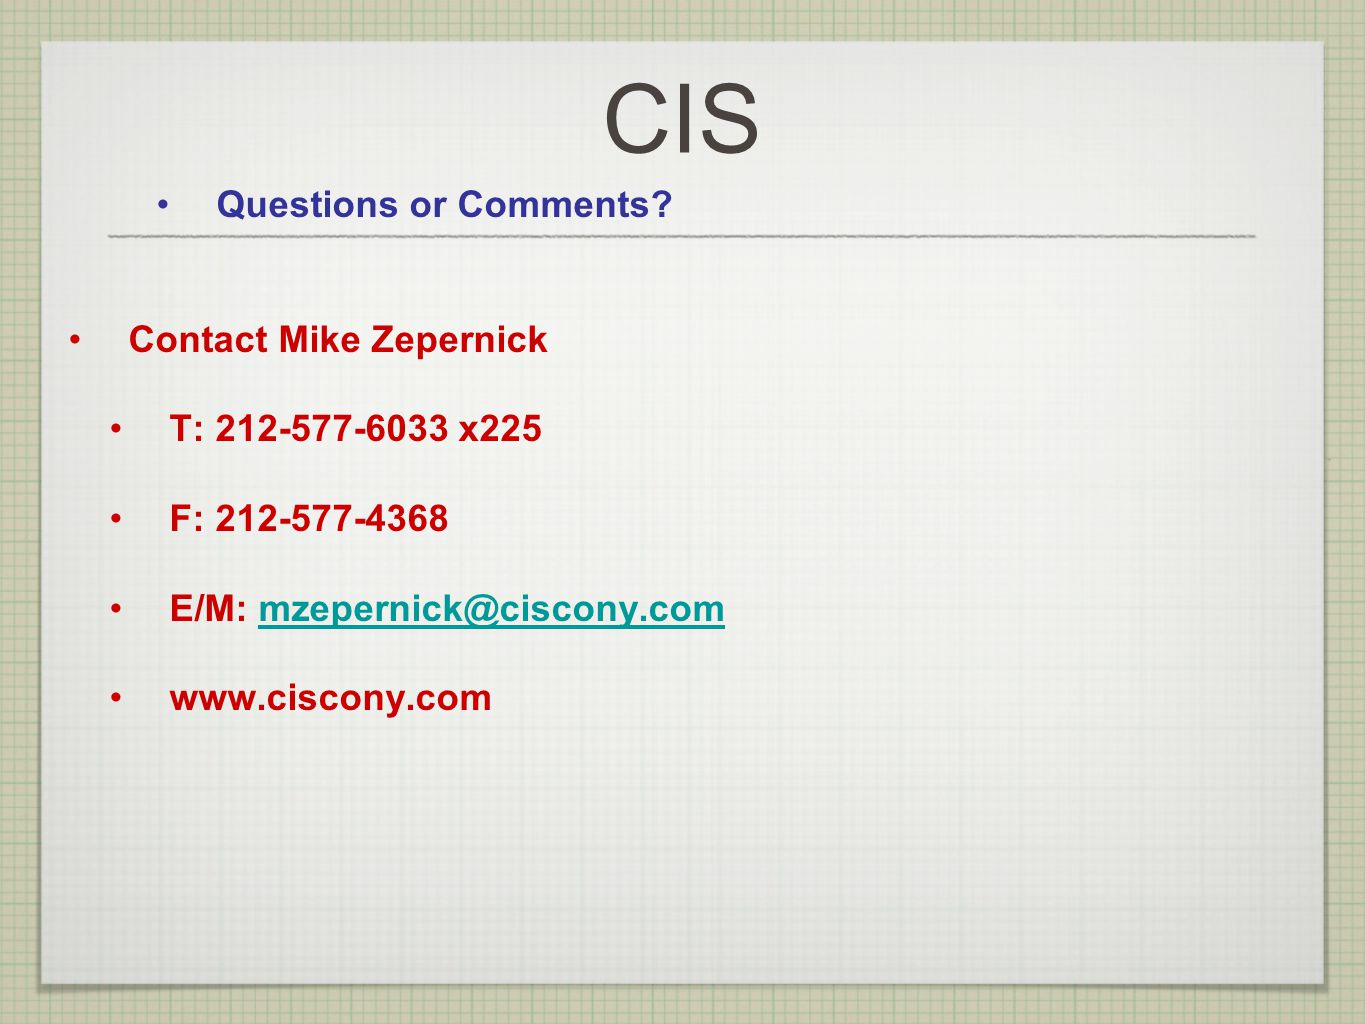 CIS Questions or Comments? Contact Mike Zepernick T: 212-577-6033 x225 F: 212-577-4368 E/M: mzepernick@ciscony.commzepernick@ciscony.com www.ciscony.c